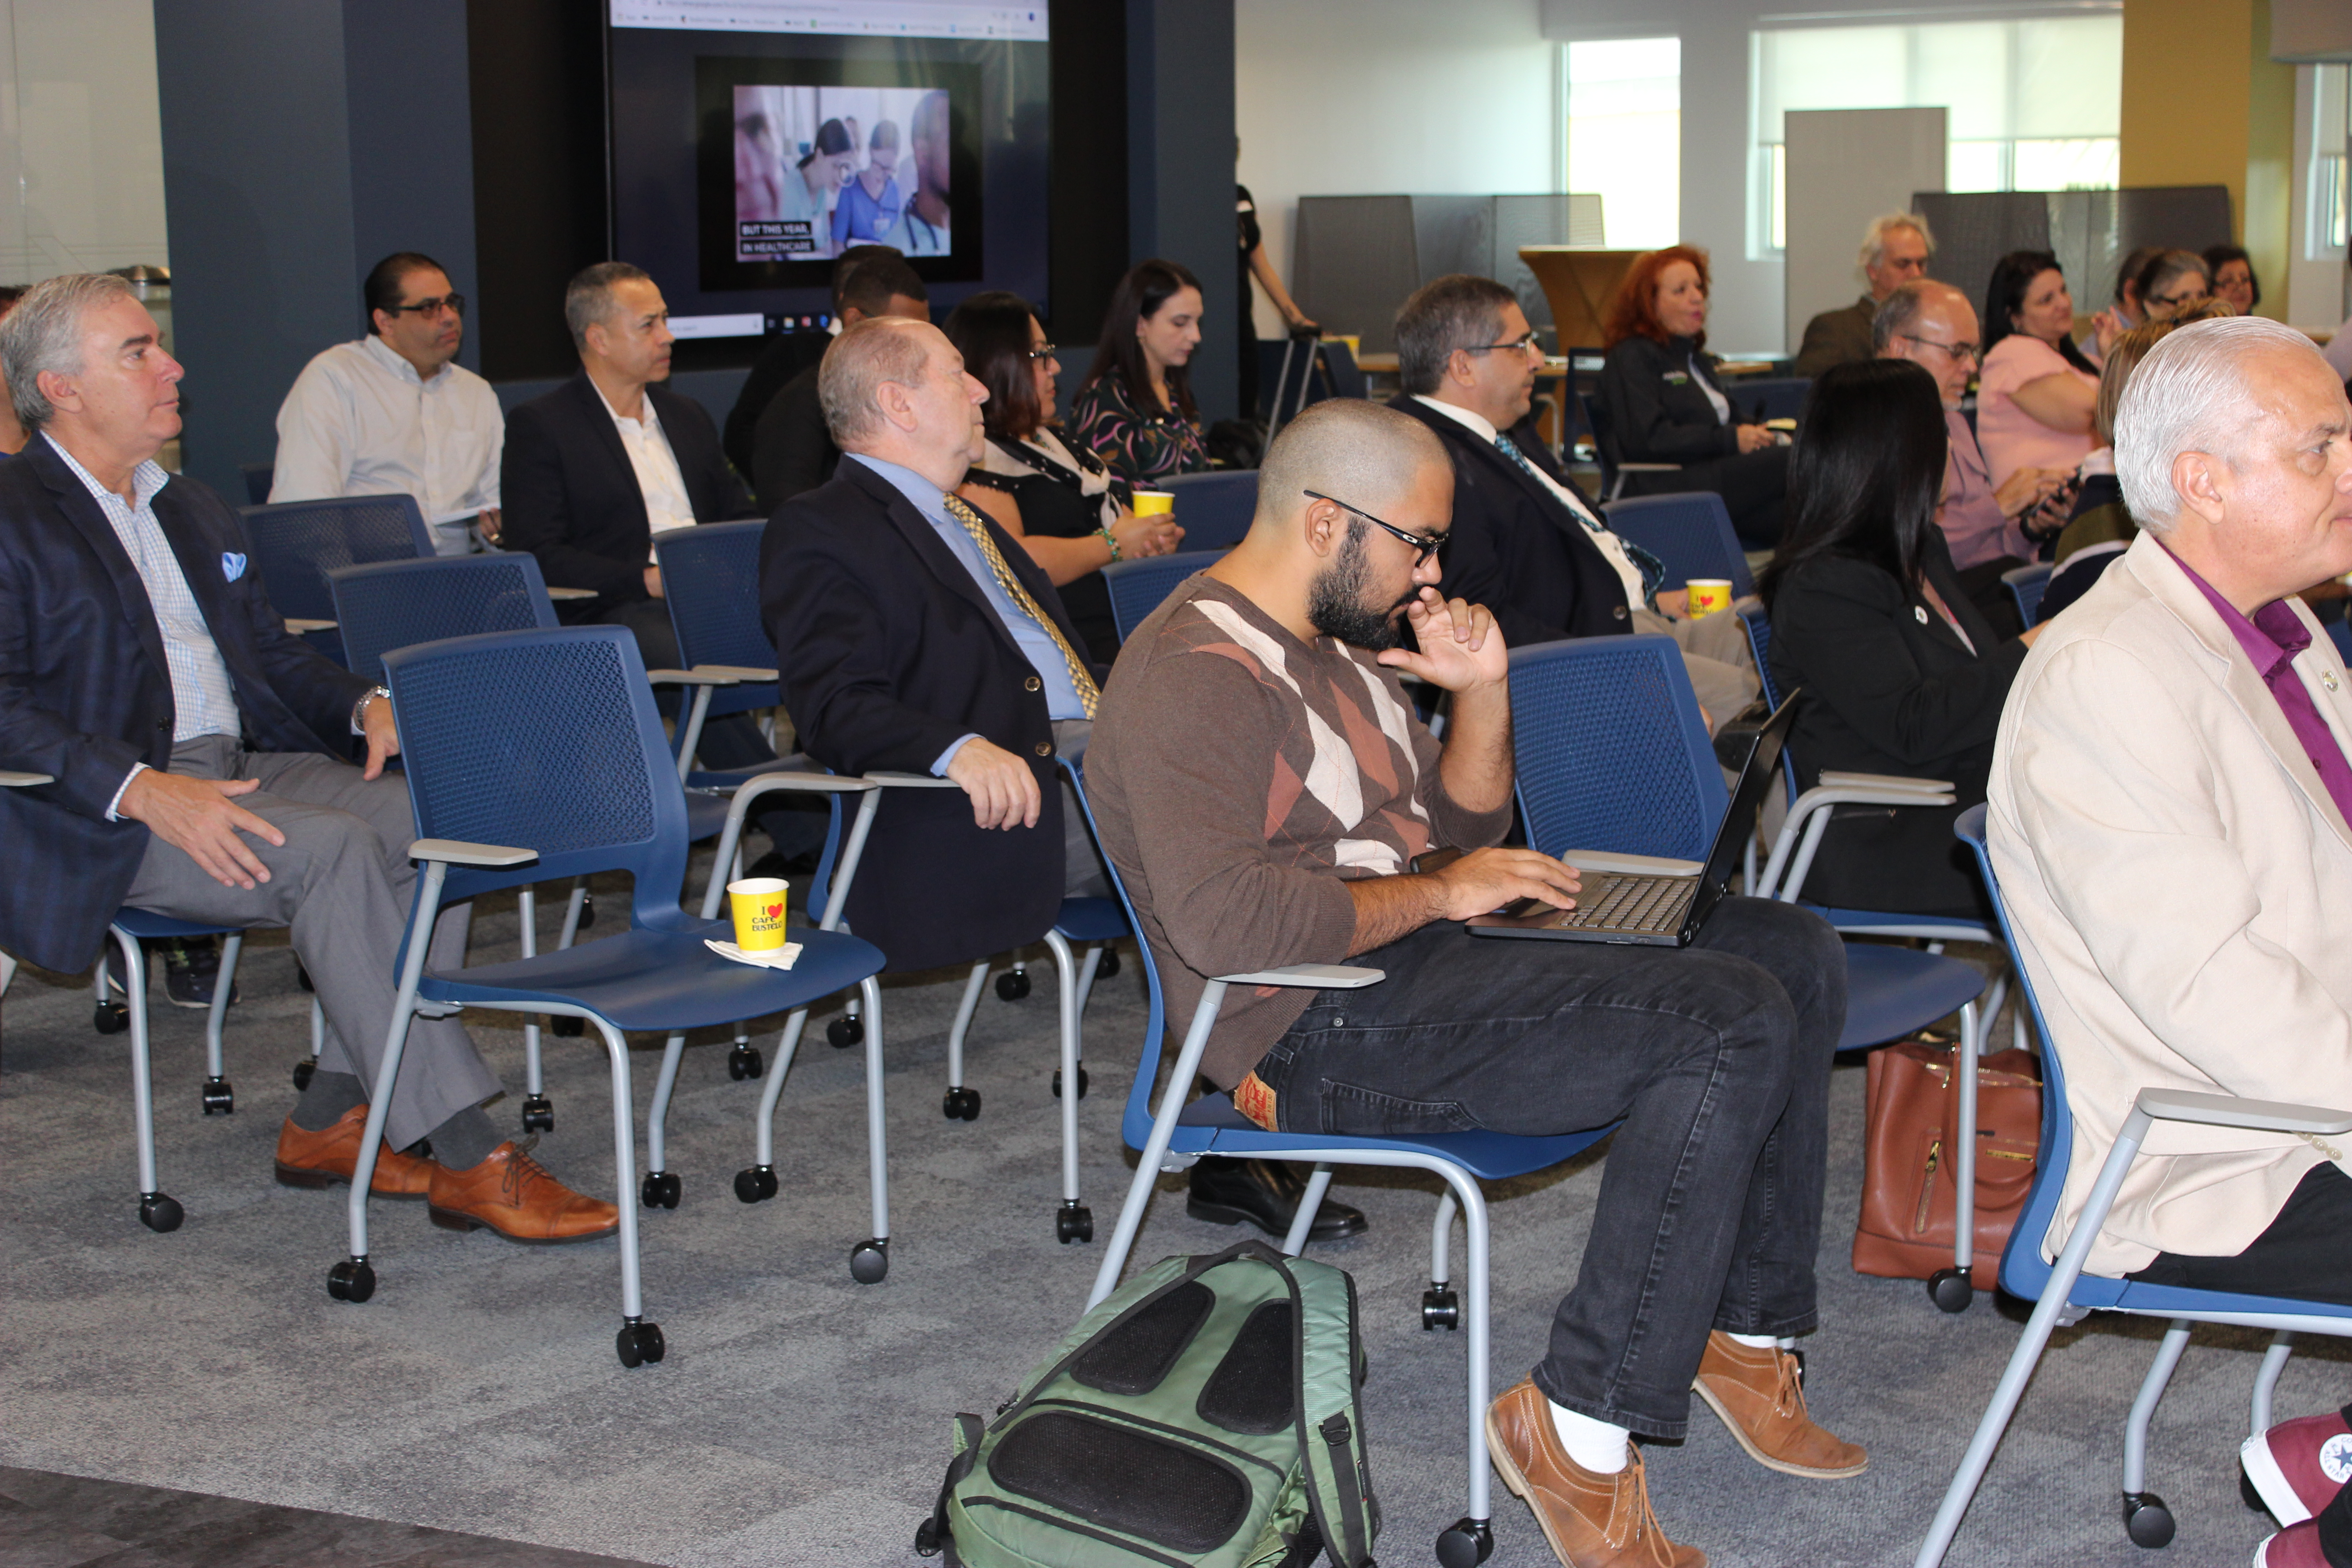 Doral Chamber of Commerce introduces DCC 21st Century Technology event, members listening in on the newest technology.